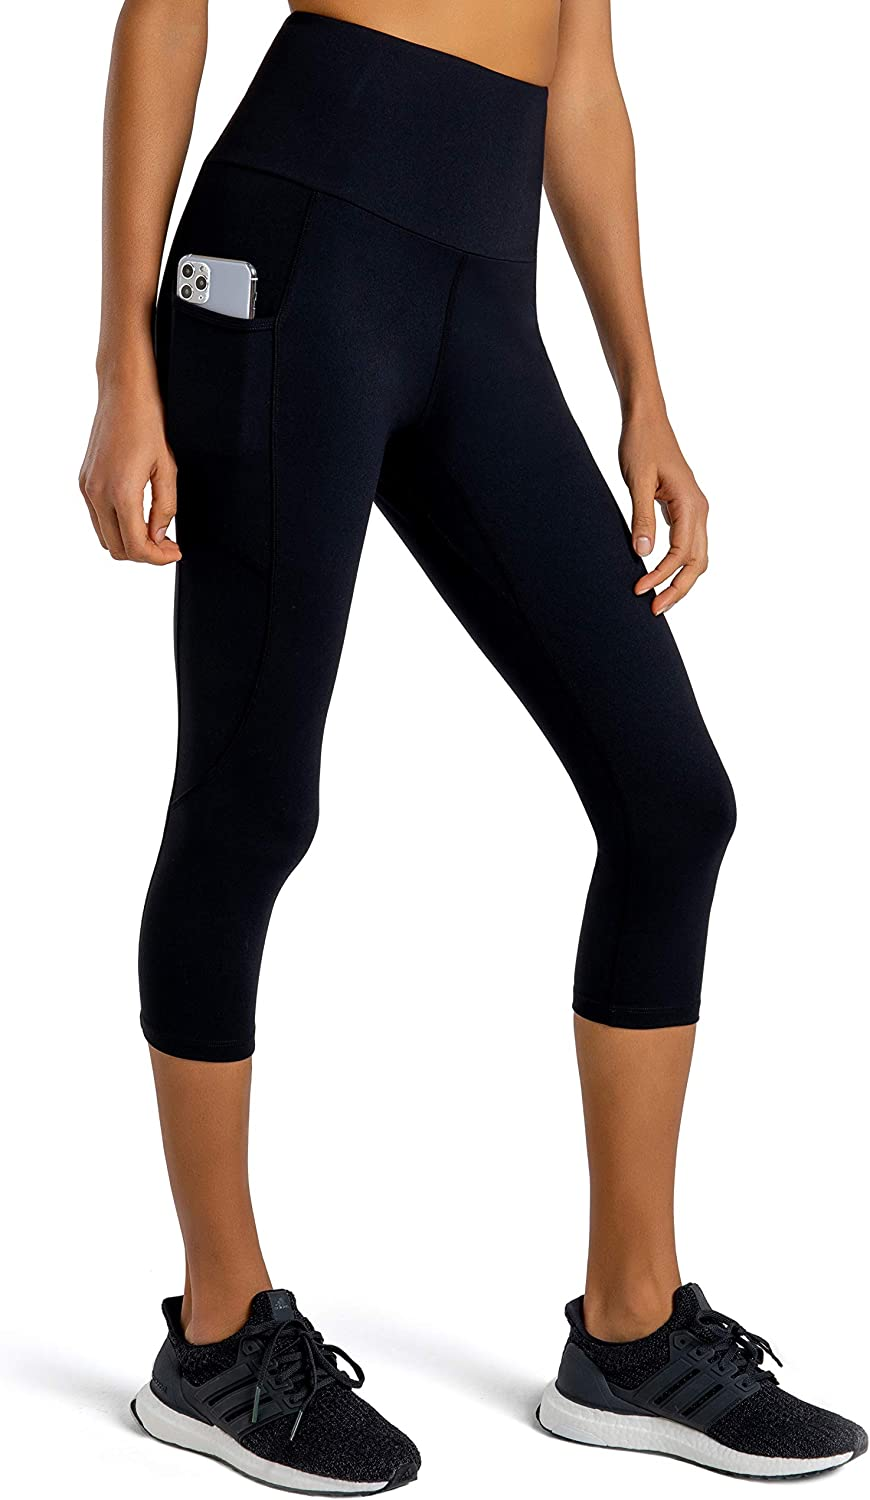 FIRST WAY Cotton Soft High Waist Women's Yoga Leggings Capris with 2 Side Pockets, Tummy Control Workout Pants Gym Tights